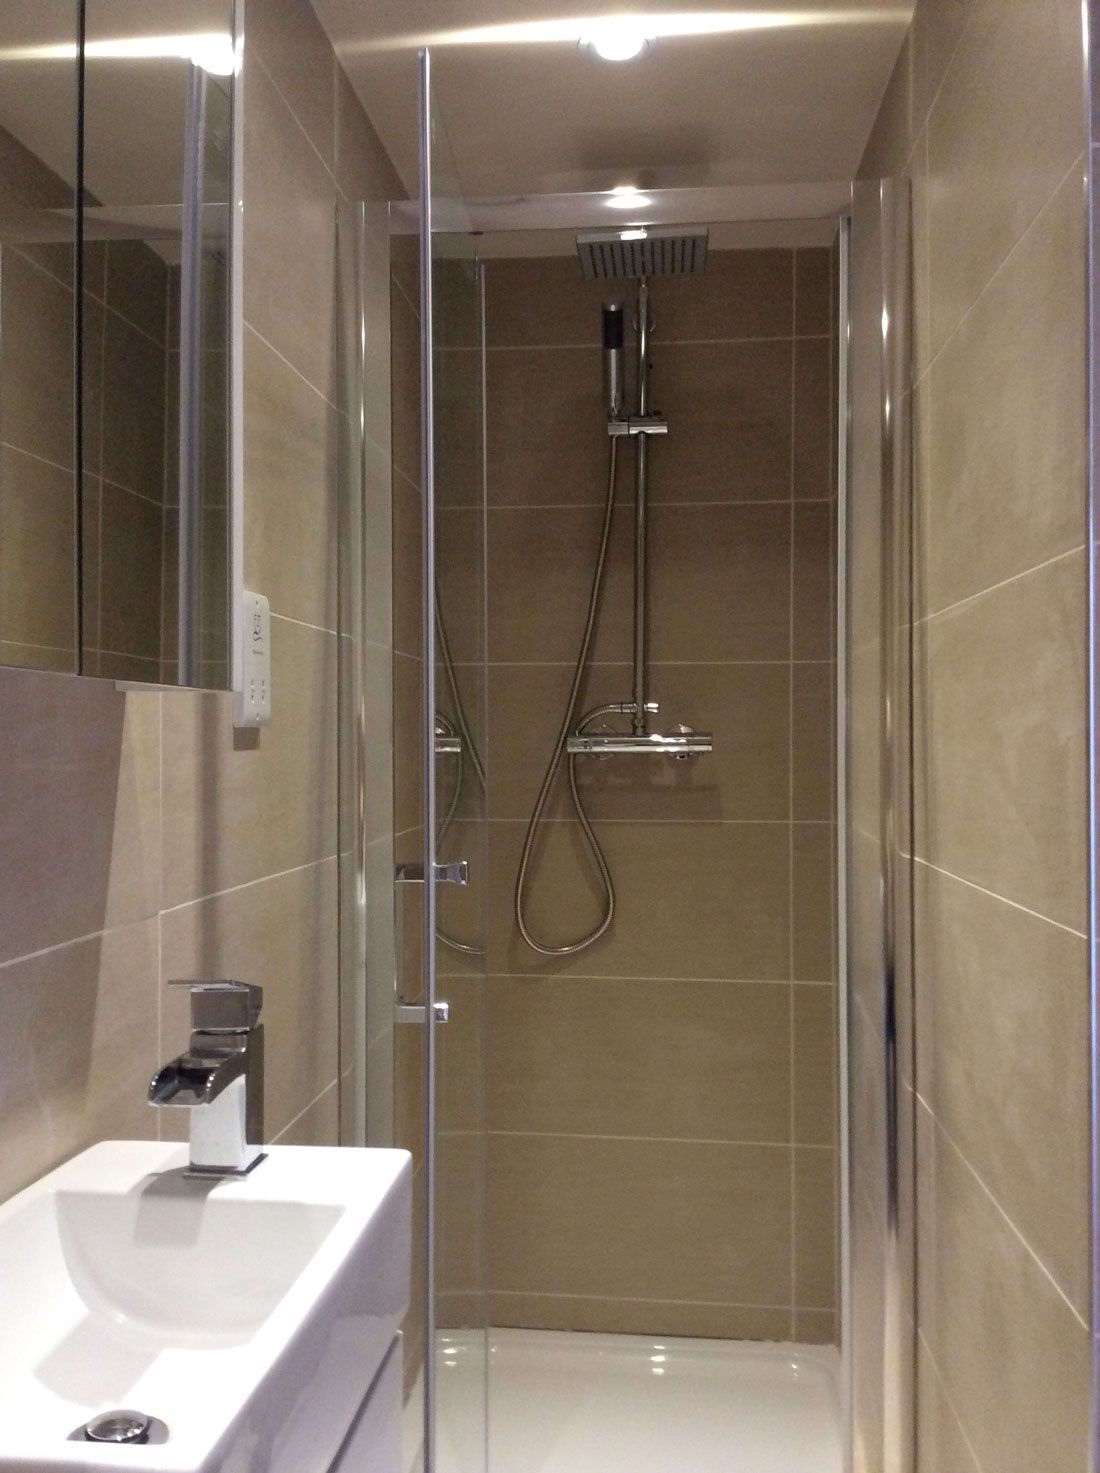 The en suite shower room is fully tiled in dark cream Ensuite tile ideas pictures